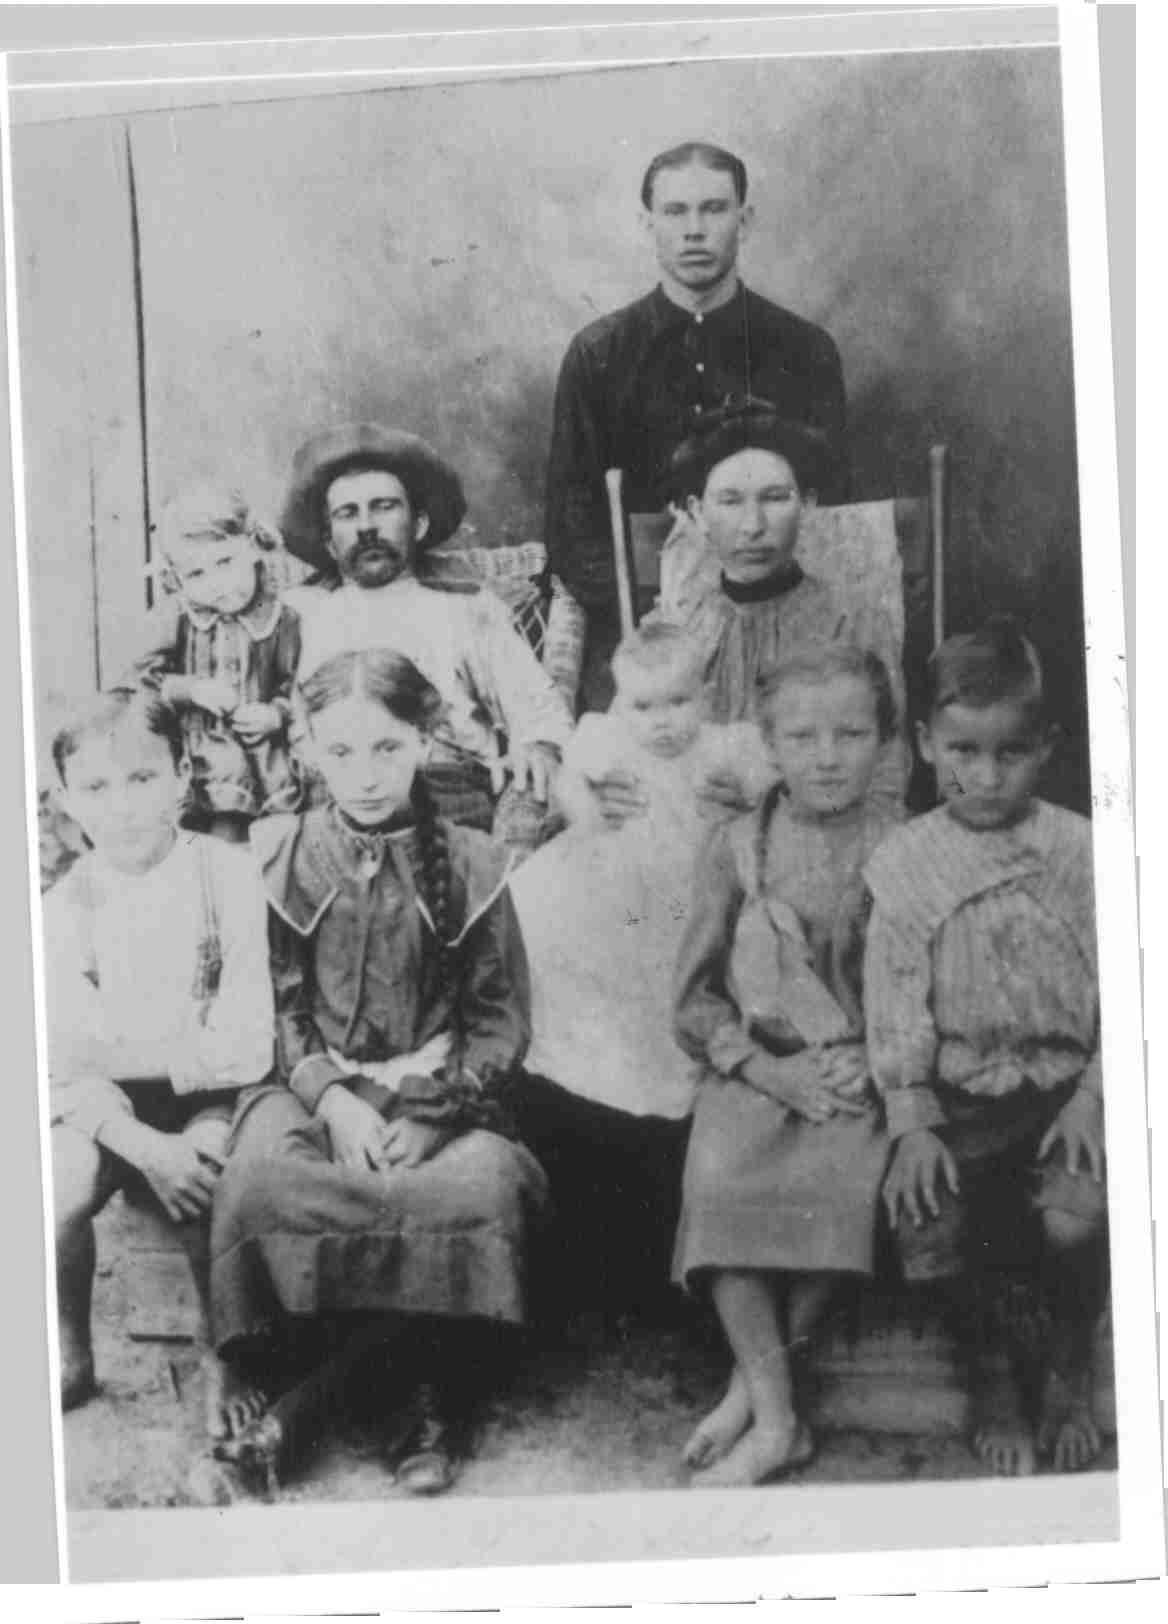 Technically Edwardian rather than Victorian. Nevertheless, it's one of my favorite old family photos, partly because it's MY family. Those are my great grandparents and their children in 1905, with a couple more to come later. My mom's dad is the bashful blonde toddler sitting on the arm of his dad's chair. As was not uncommon in that era, five of my grandfather's siblings died of various causes before age 18. However, my grandfather lived into his 80s, and two of his sisters into their 90s.